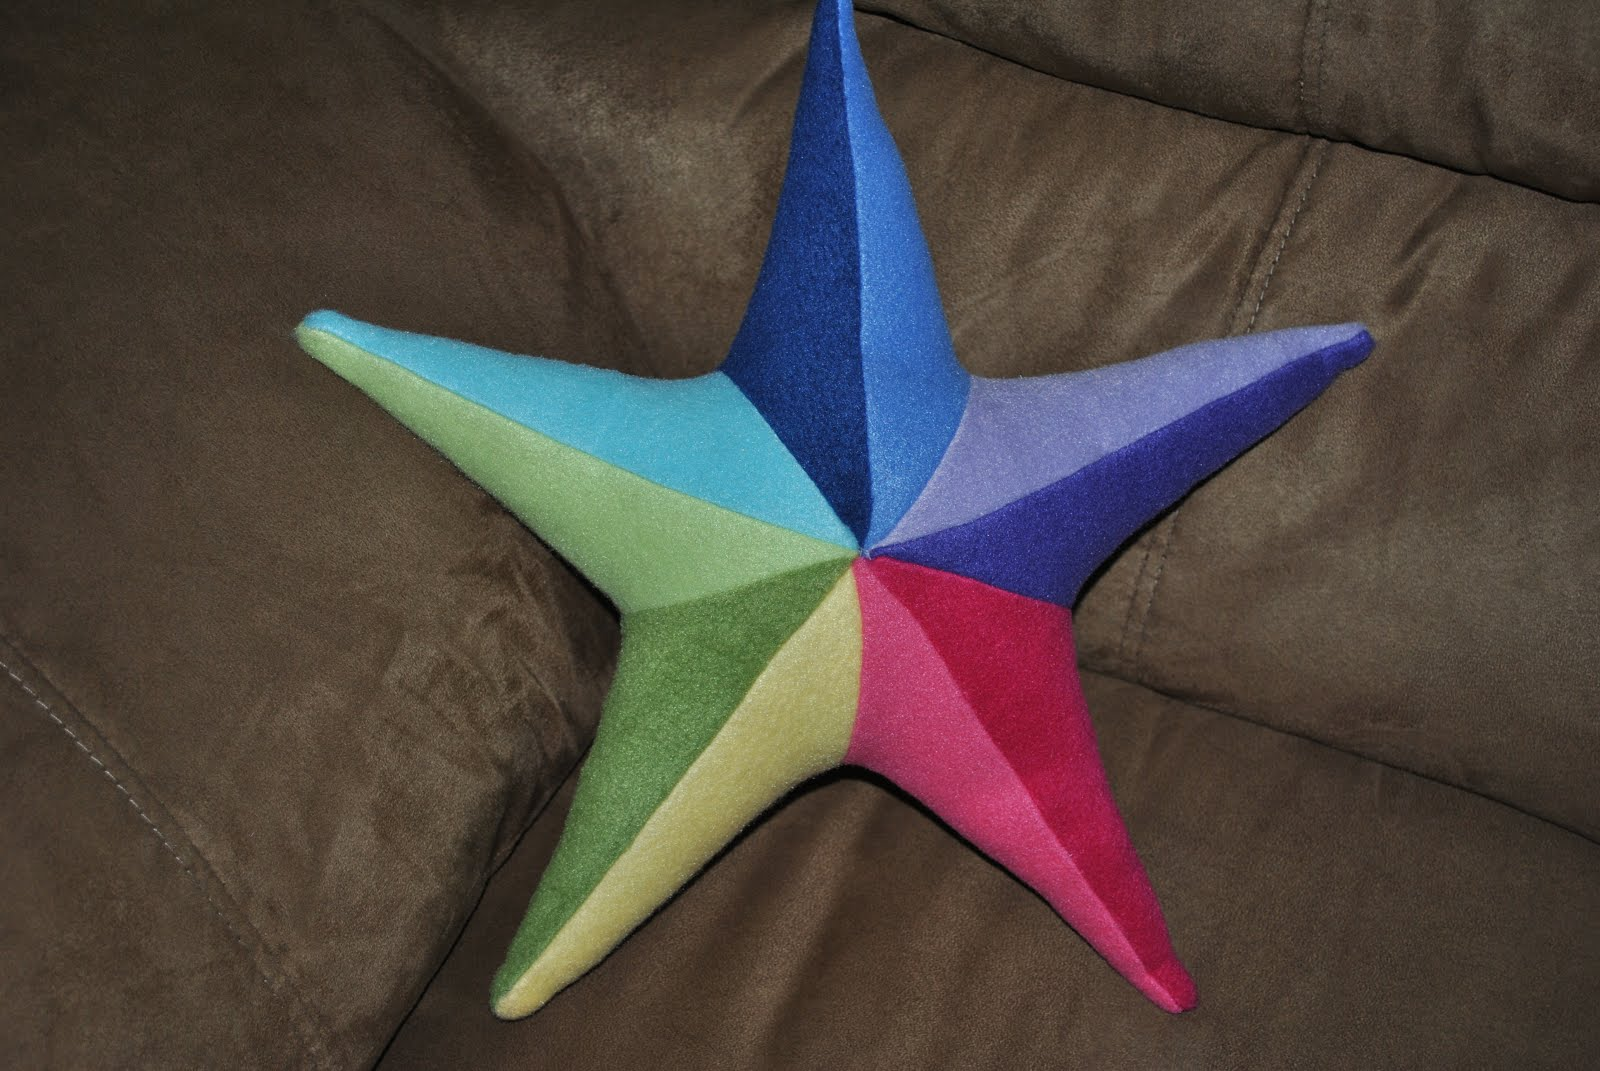 Stargazun Designs Fleece Stuffed Rainbow Star Pillow